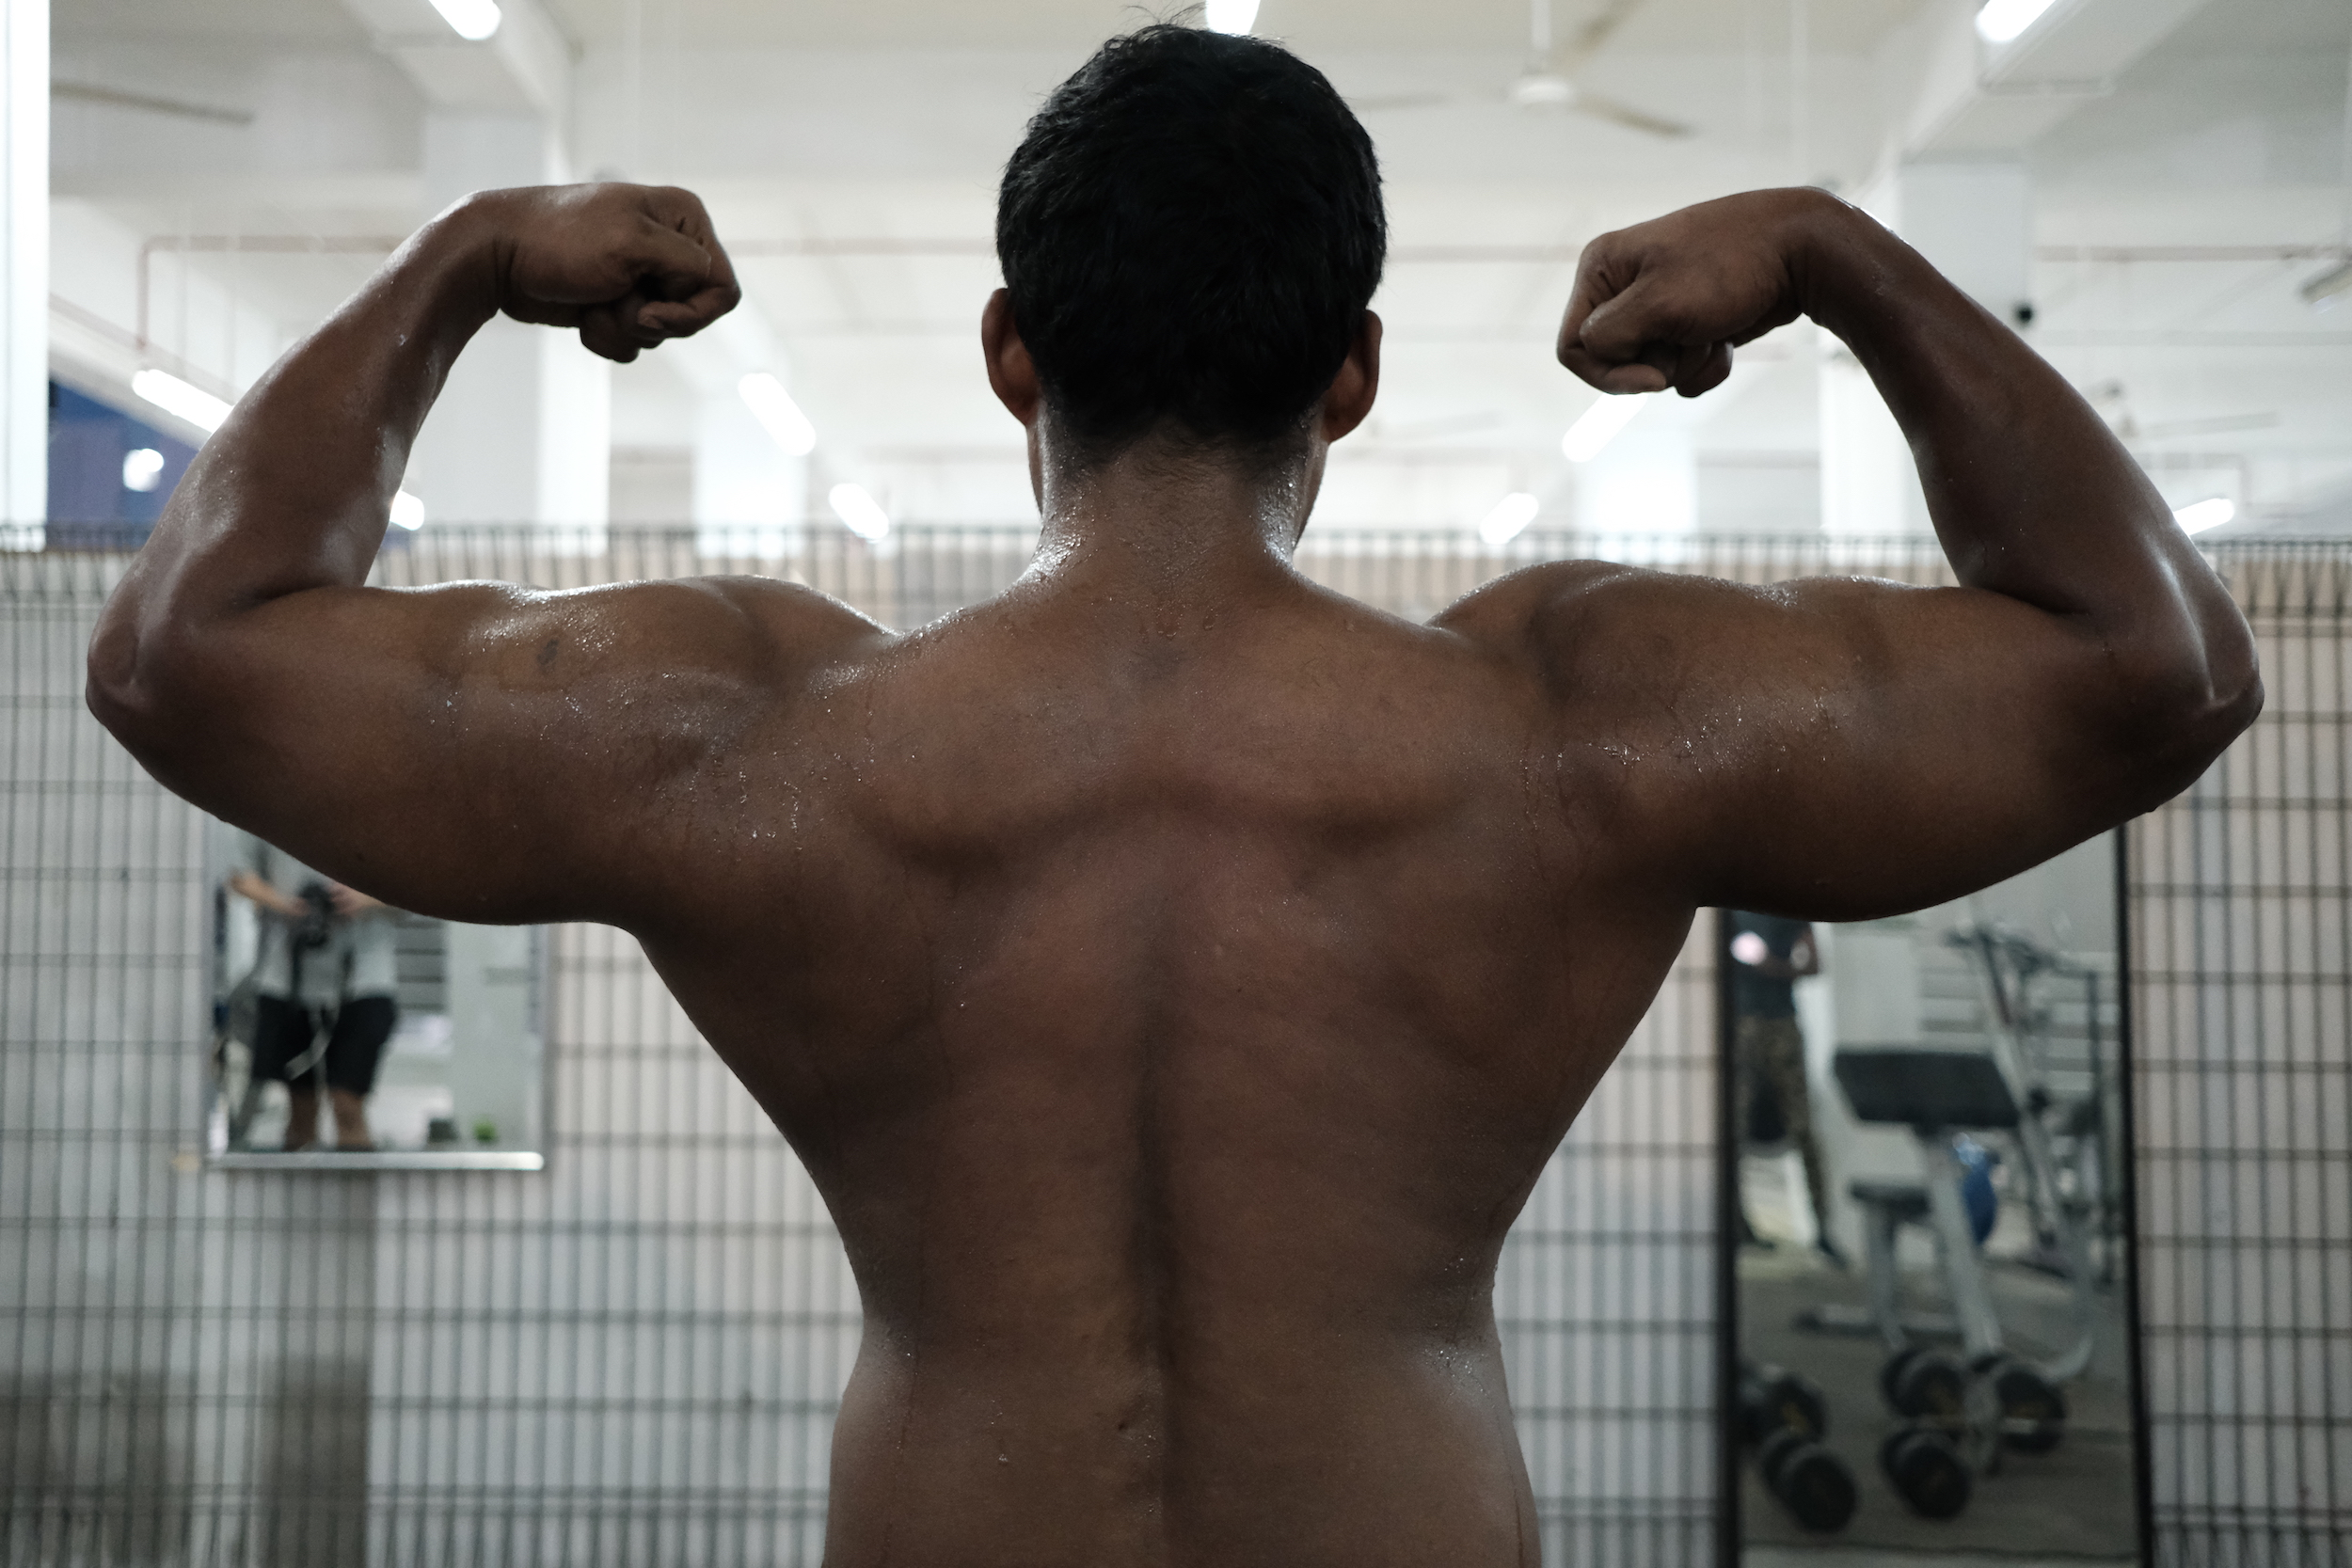 Image of Murugesan as he works out